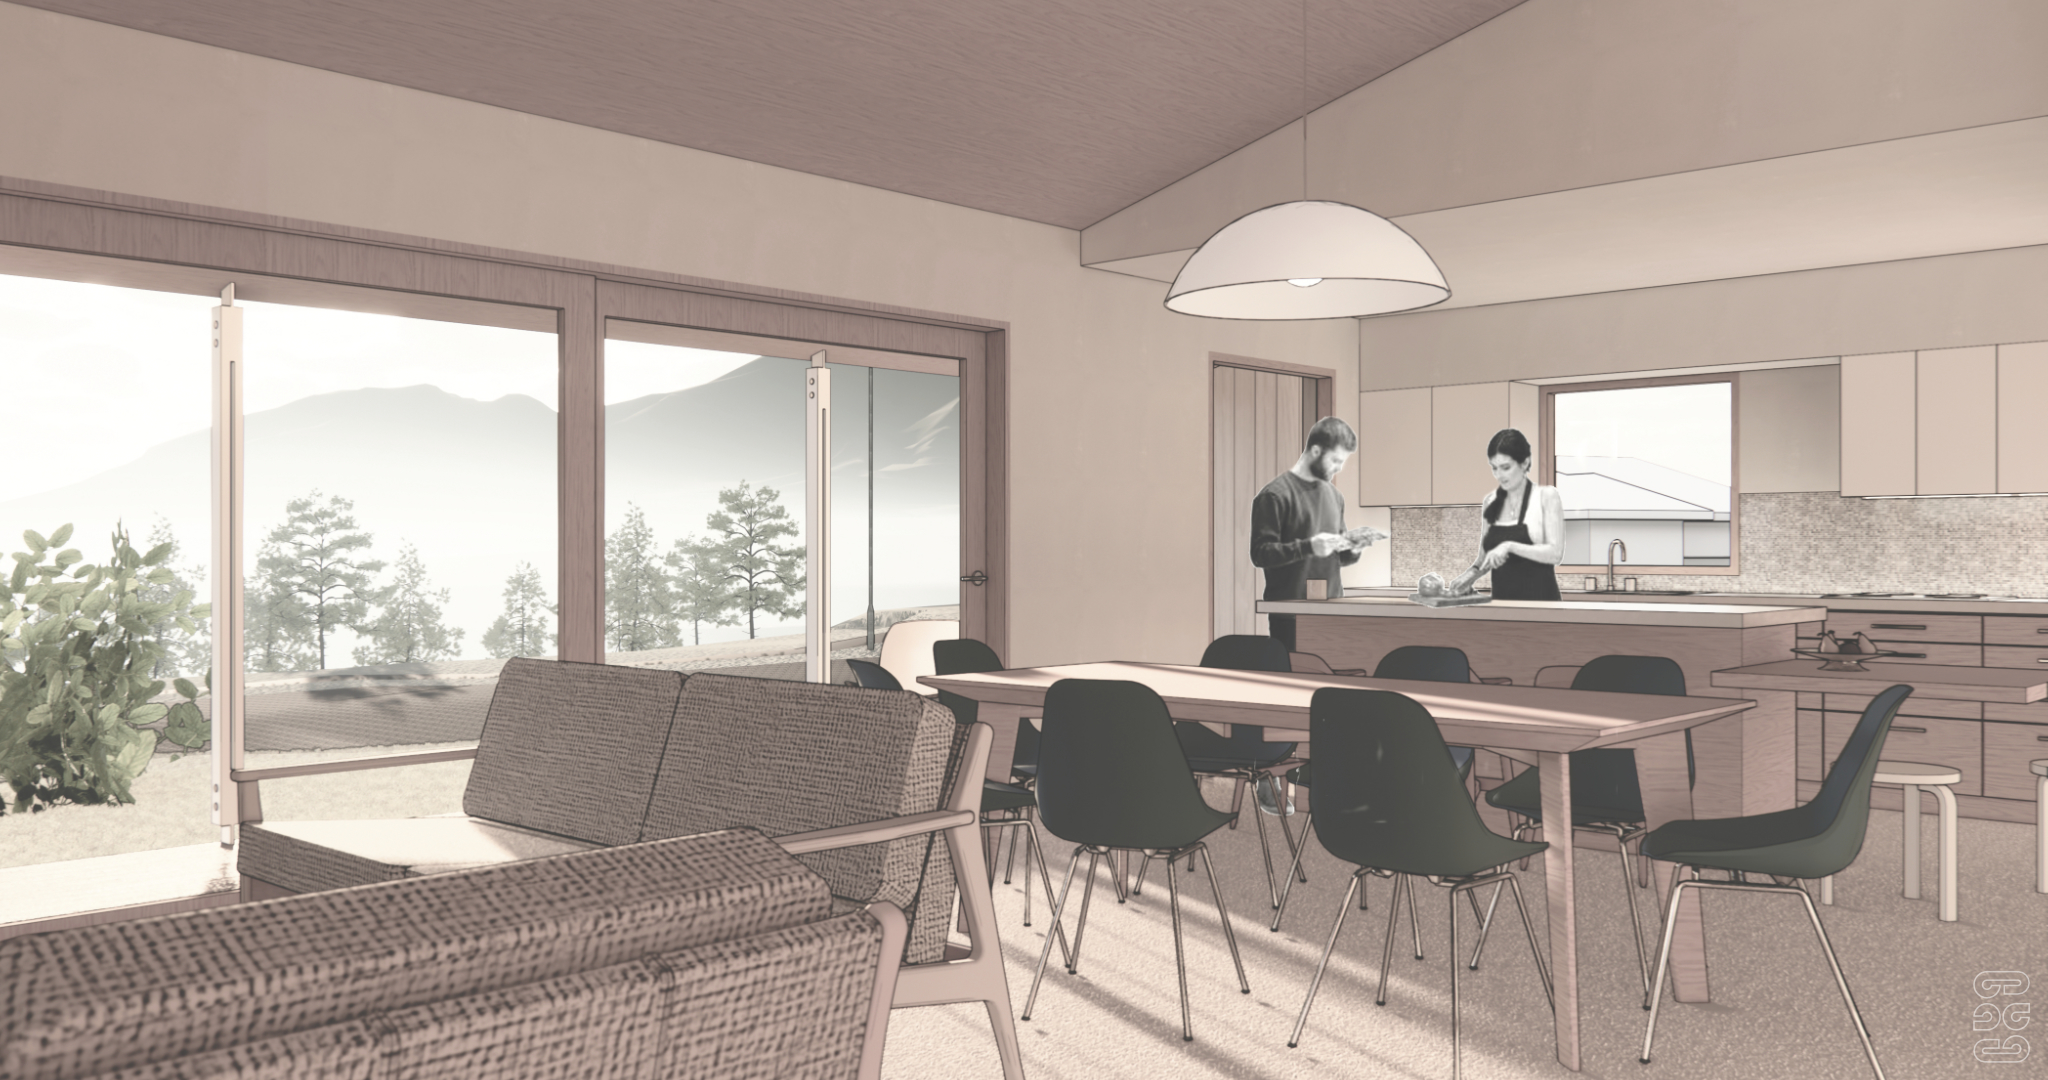 Taupo Passive House - 3D View 04.jpg